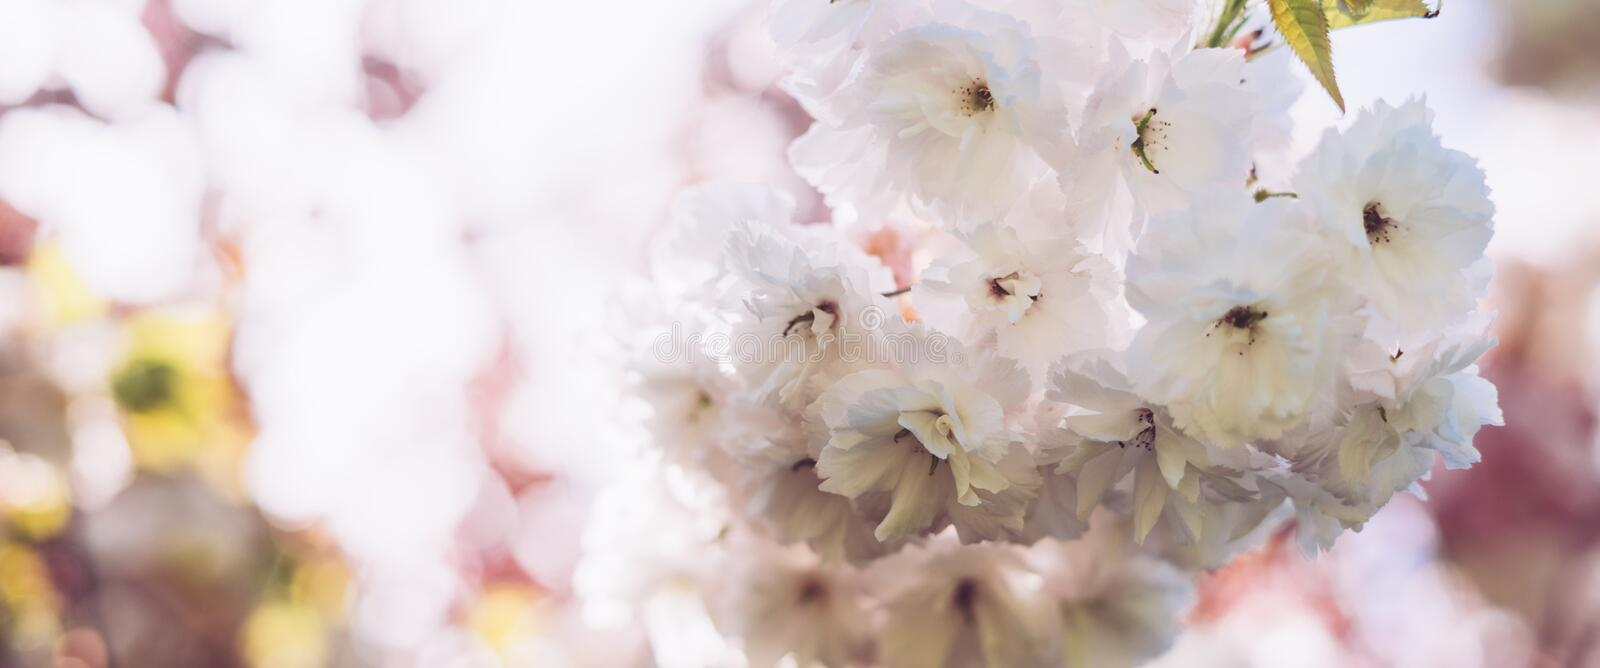 Macro pink blossom cherry tree in spring garden, sakura tree on background closeup, beautiful romantic flowers for card clean spac. E for text, blooming flora royalty free stock photography